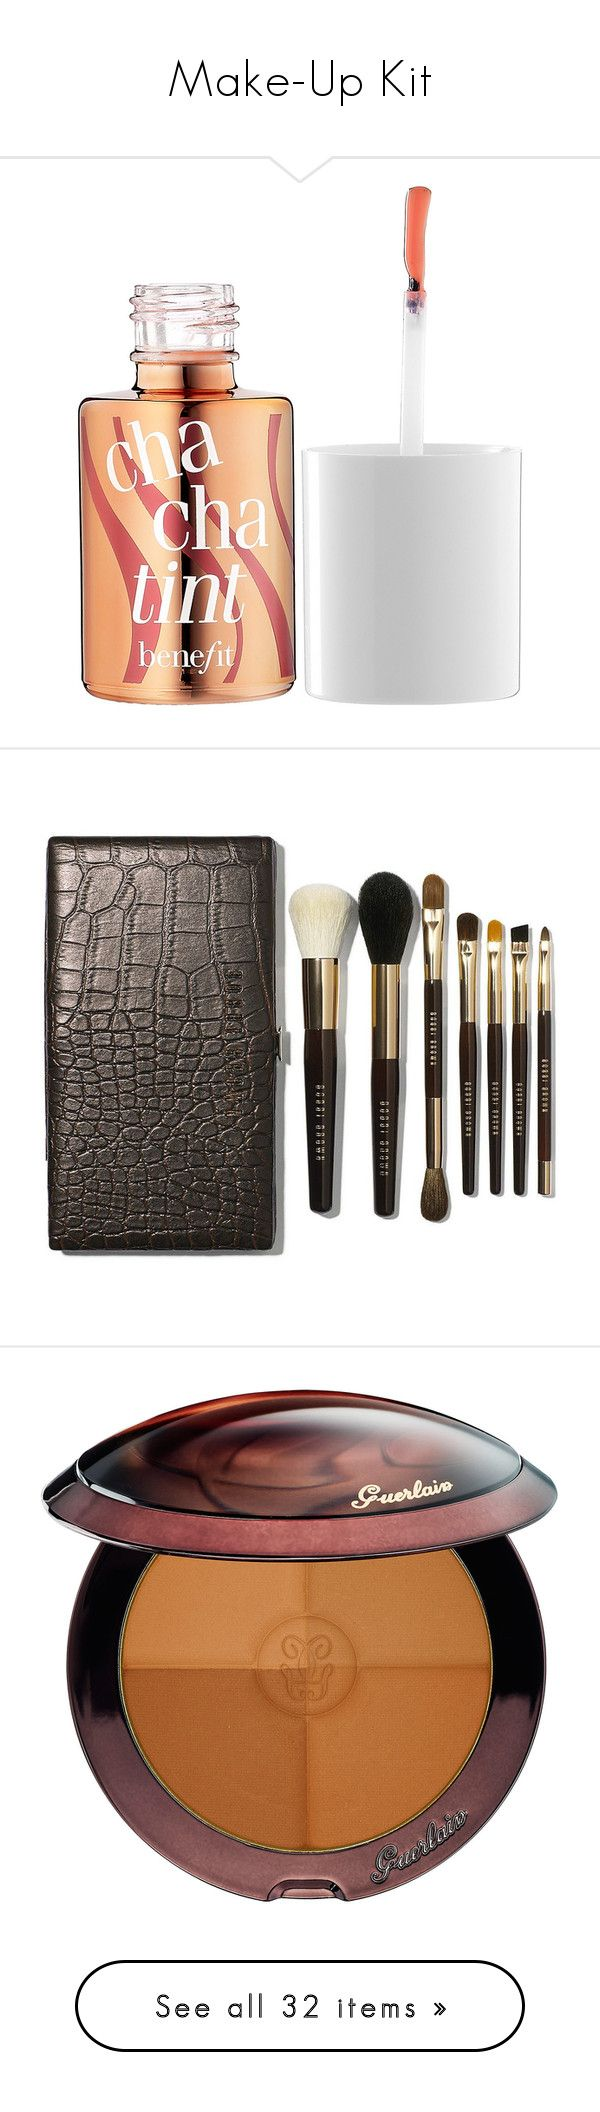 Make-Up Kit by charlotte-mcfarlane on Polyvore featuring polyvore, beauty products, makeup, cheek makeup, blush, beauty, faces, benefit blush, makeup tools, makeup brushes, fillers, apparel & accessories, no color, blender brush, set of brushes, bobbi brown cosmetics, makeup powder brush, set of makeup brushes, lip makeup, lip gloss, lips, shiny, glossier lip gloss, lip gloss makeup, shiny lip gloss, lip shine, cheek bronzer, guerlain bronzing powder, guerlain, eye makeup, eyeshadow, eyes…